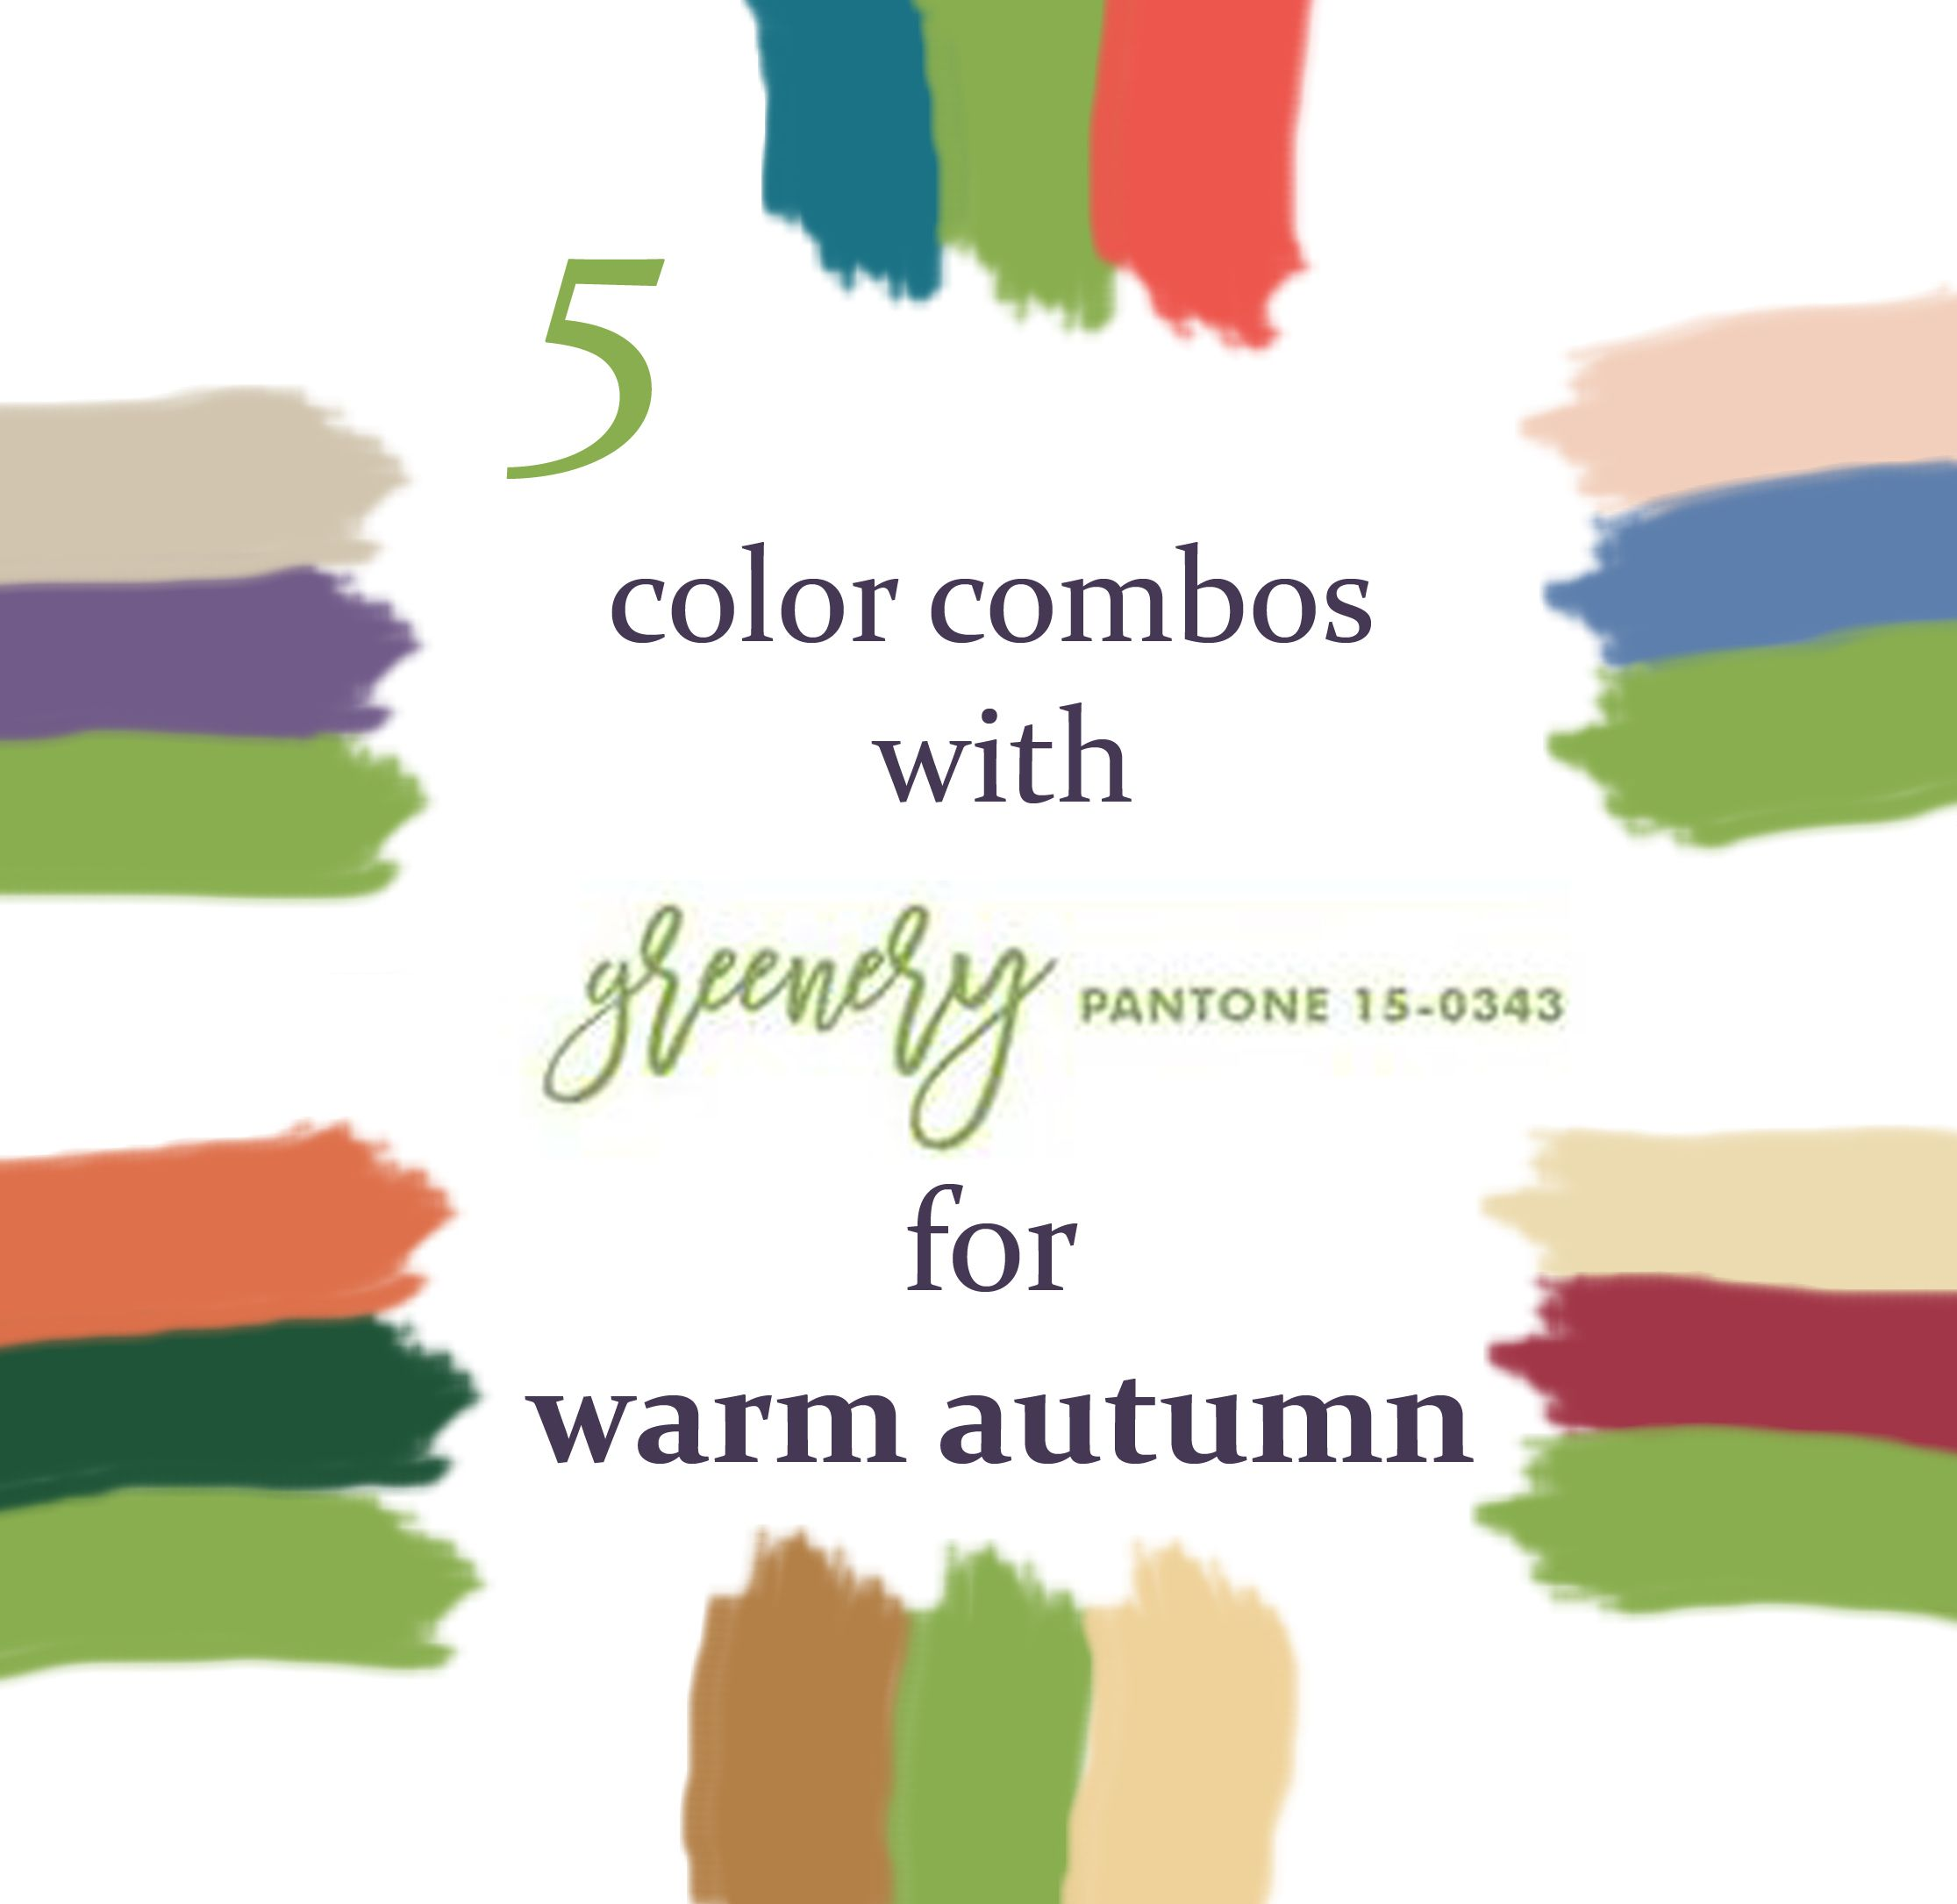 5 Color Combos With Greenery For Warm Autumn (True Autumn)